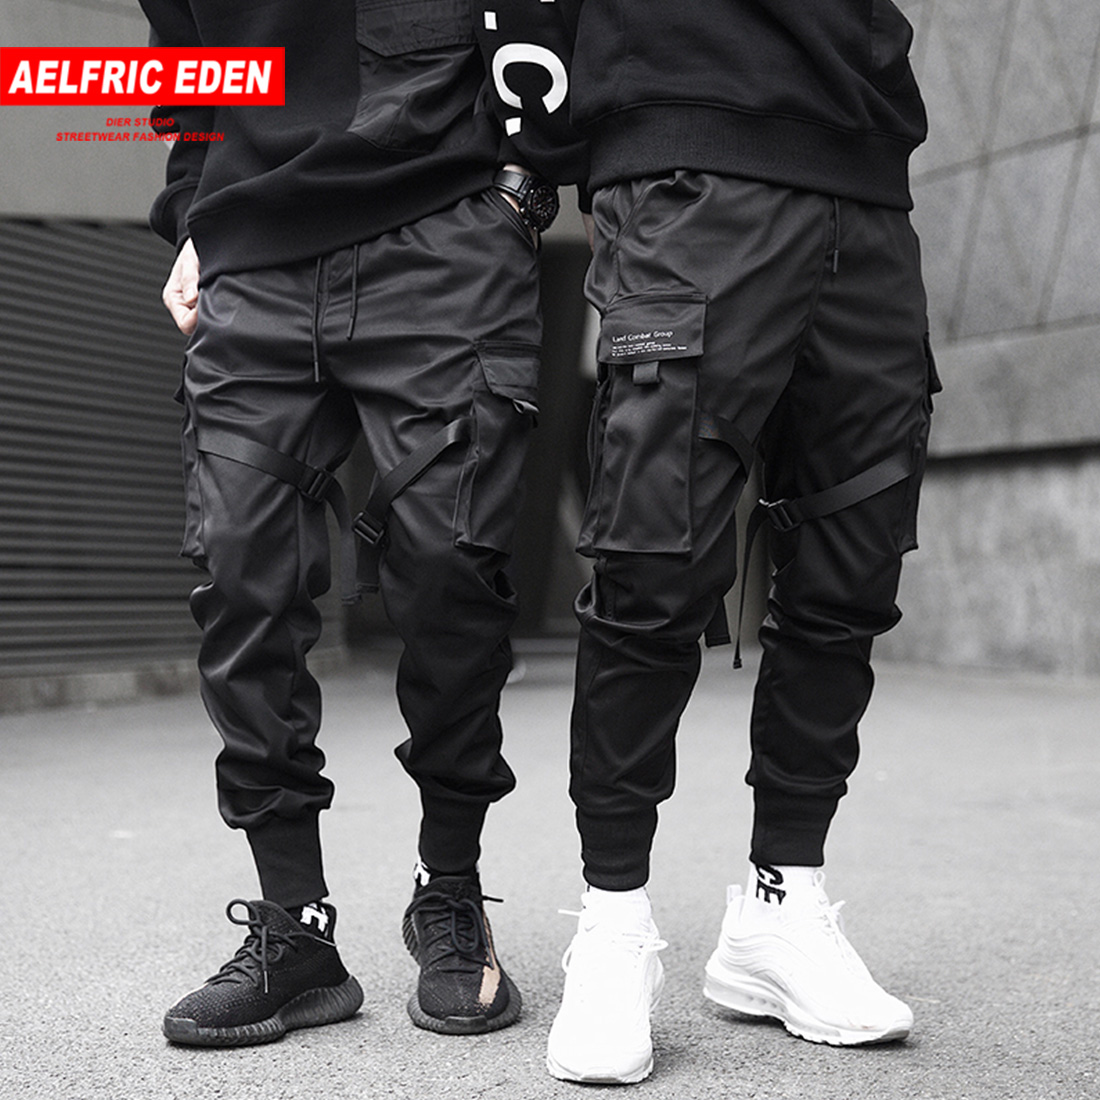 Aelfric Eden Men Ribbons Cargo Pants Black Pocket Casual Streetwear 2019 Harem Joggers Harajuku Sweatpants Male Hip Hop Trousers(China)